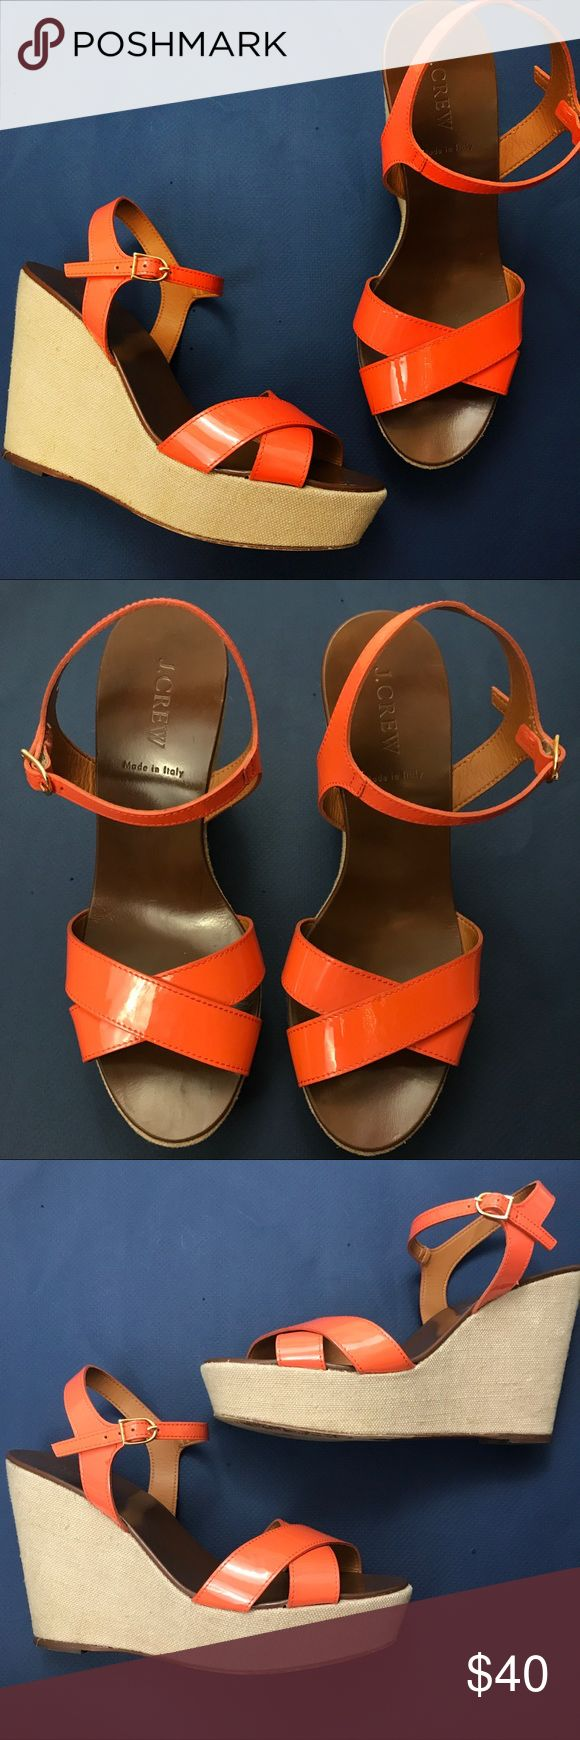 J. Crew Orange Patent Leather Cross Sandal Wedges Super cute orange wedges from J. Crew!  Orange patent leather material on top with a tan brown canvas wedge base.  Dark brown leather sole. Size 8.  Some wear on the bottom sole as shown.  No signs of wear on the orange, inner sole, or sides.  Add your favorite listings to a bundle to receive a special discount! J. Crew Shoes Wedges